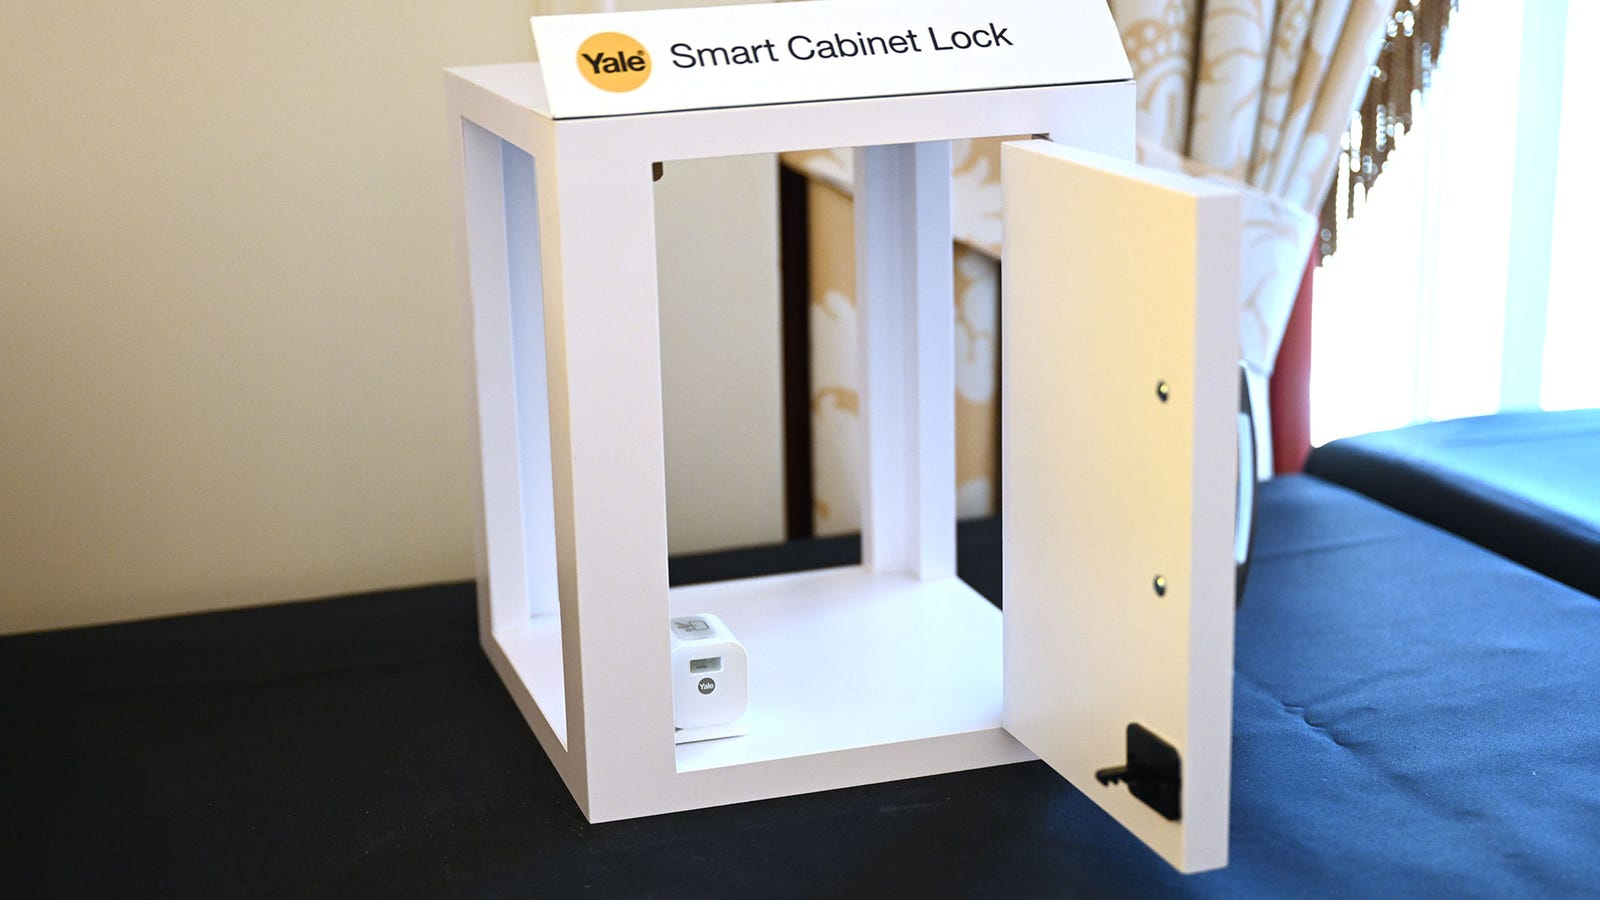 The $80 Smart Cabinet Lock is the small white box in the corner, which sits inside your cupboard and latches on to a plastic tab that you install on the cabinet's door.